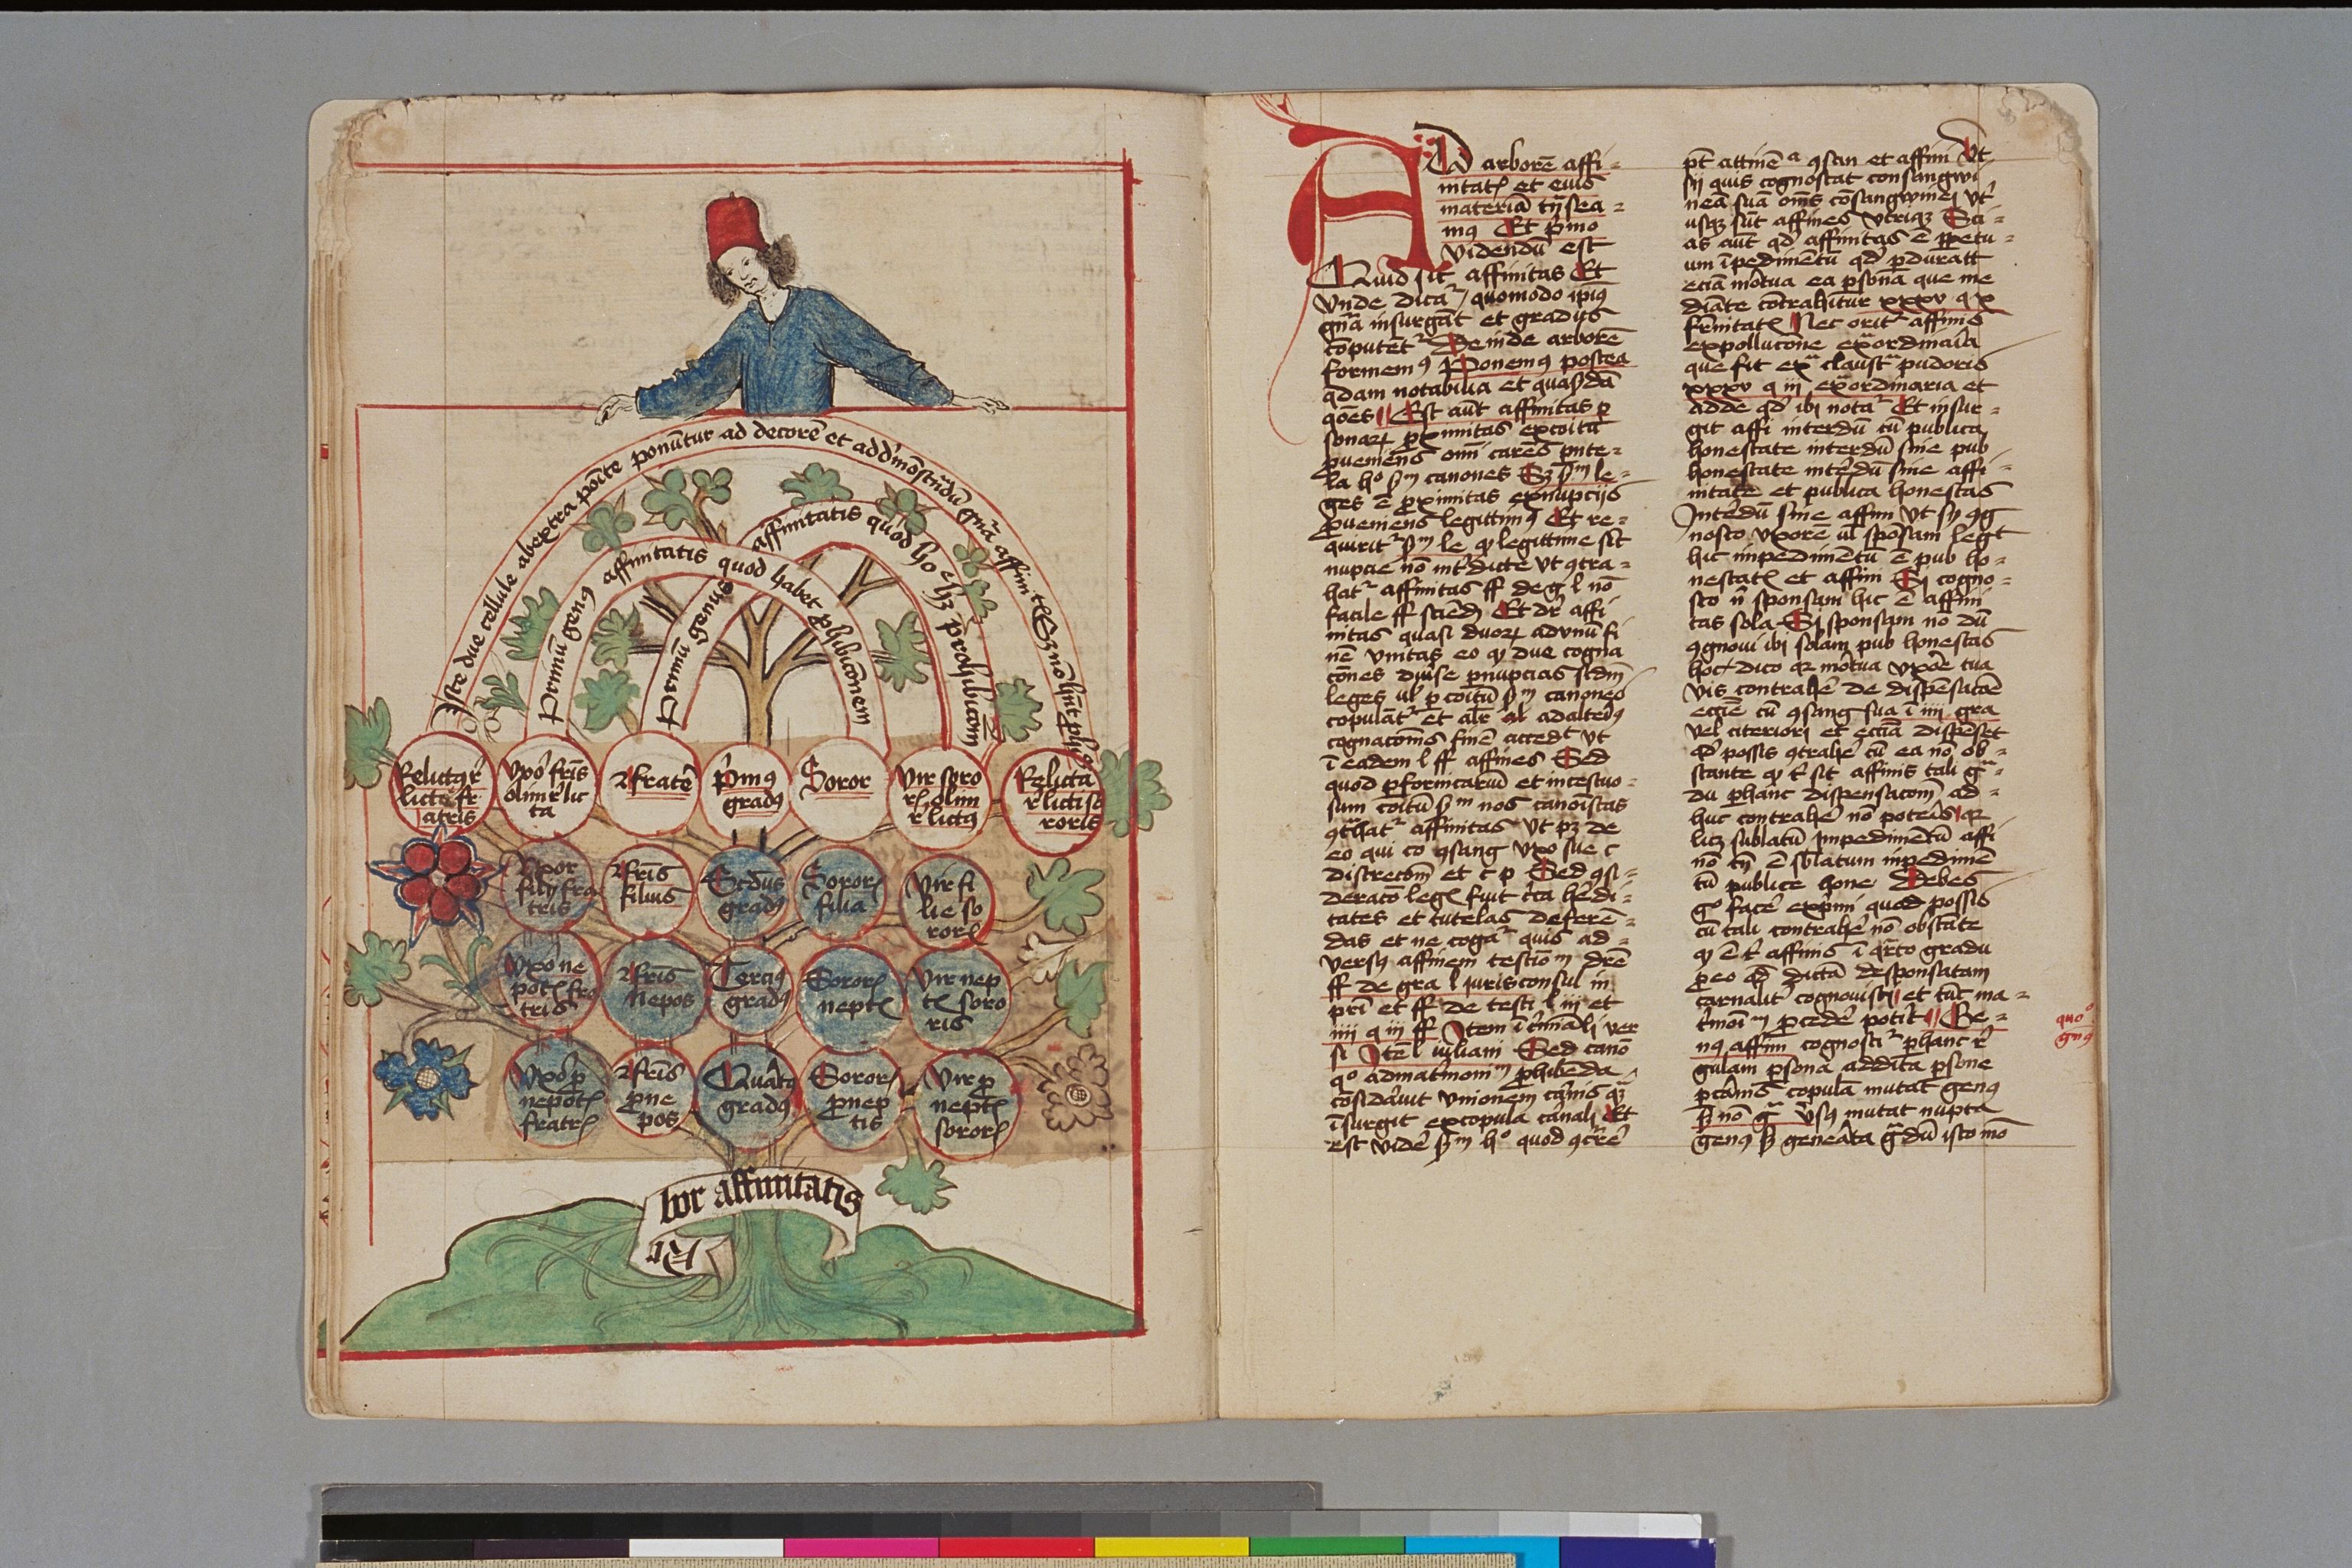 New York, Columbia University, Burke Library at Union Theological Seminary, UTS MS 008, ff. 7v-8